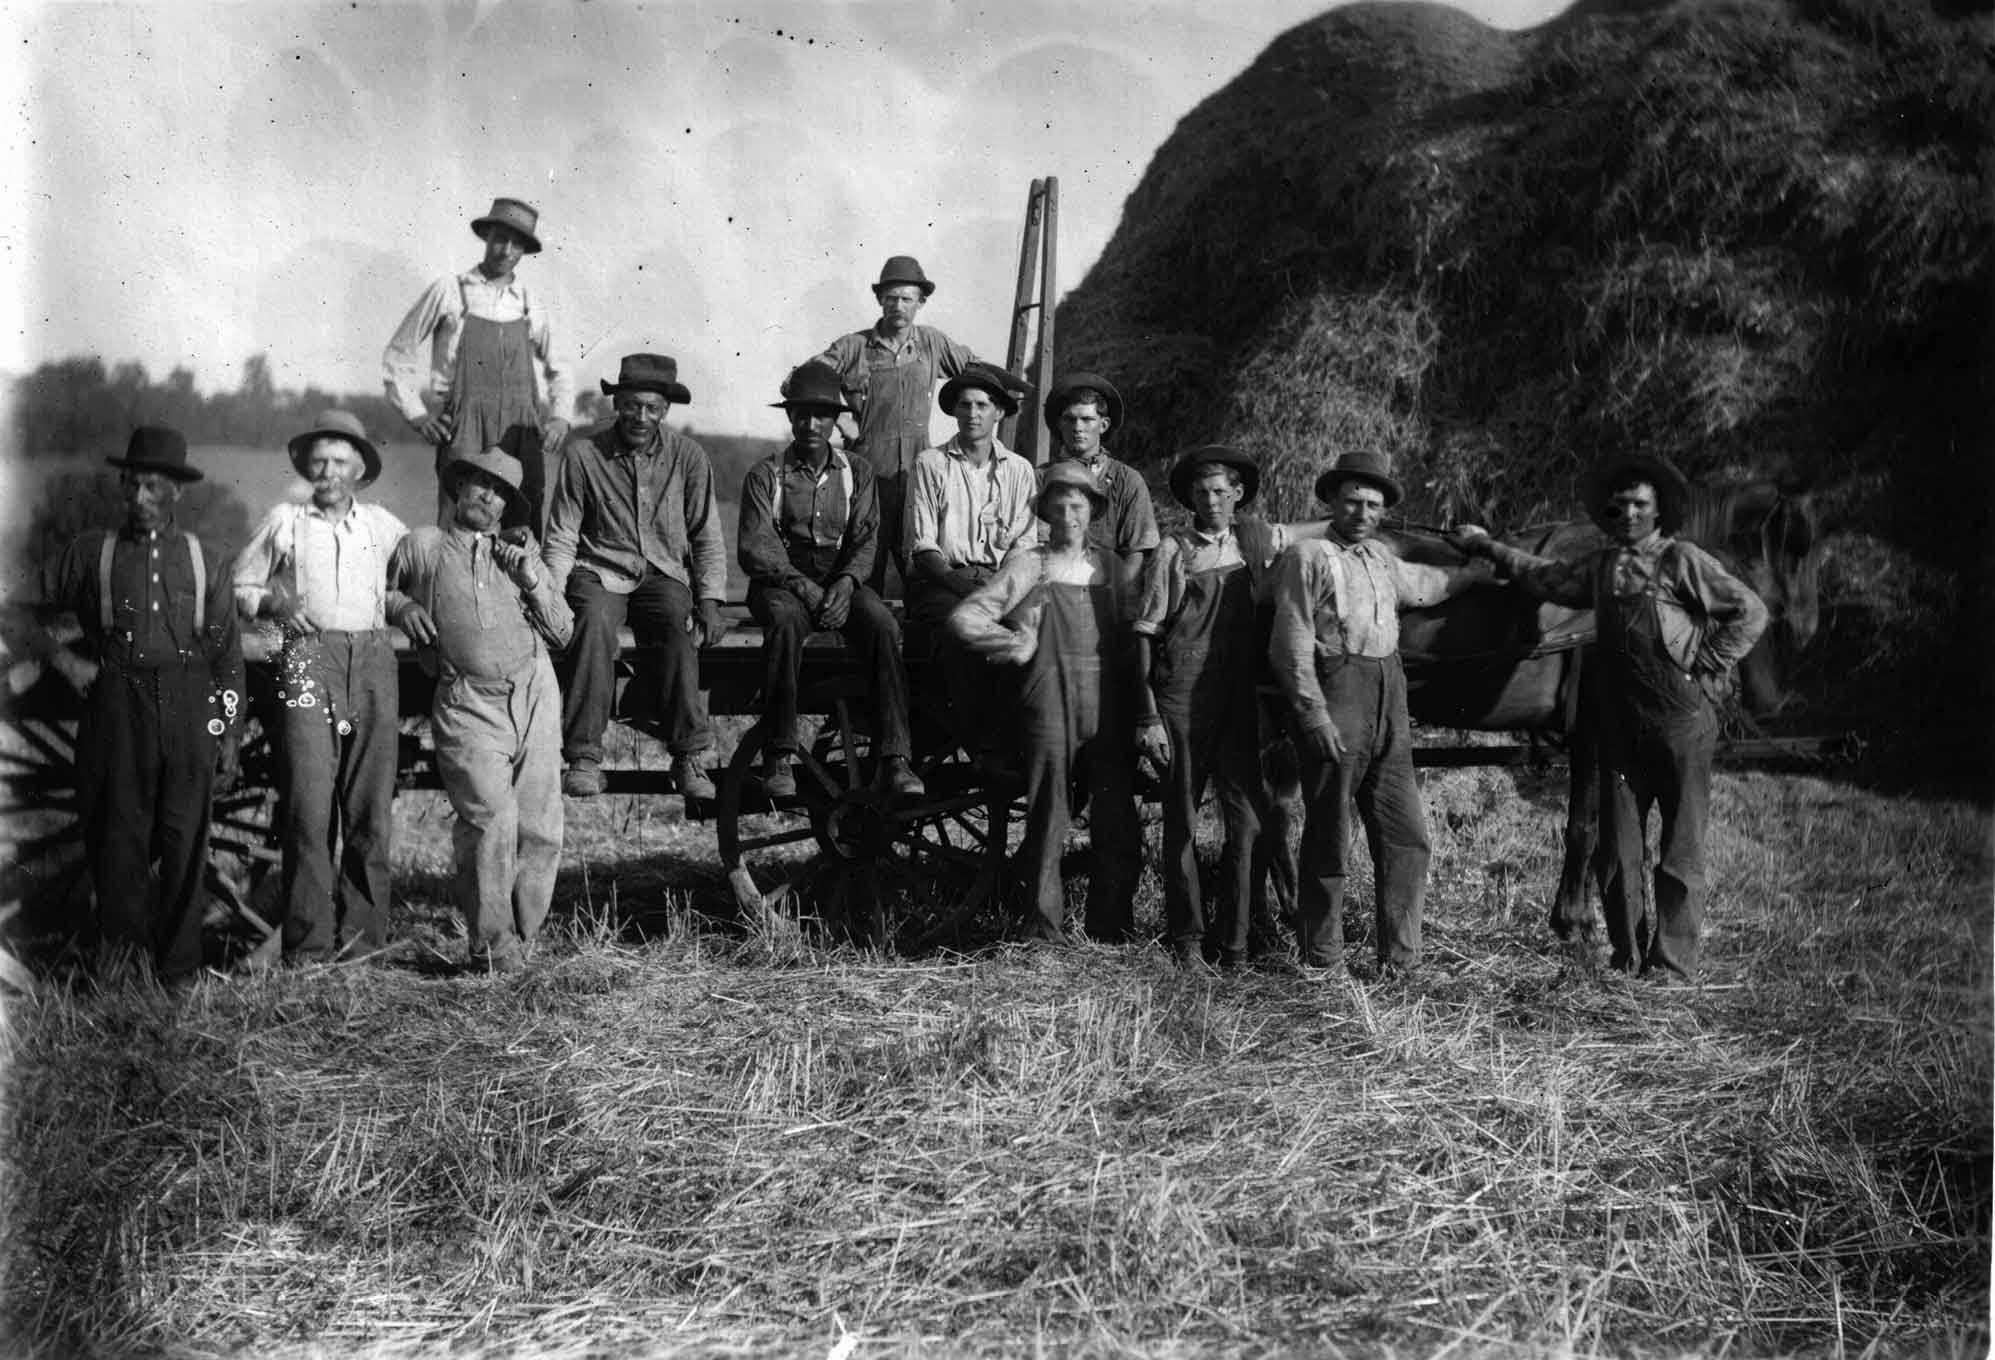 Field Crew circa 1900. Drovers would move hogs into Cincinnati and then work local farms as they head back out from Cincinnati. Here they are pictured harvesting wheat at the foot of Mt. Nebo.